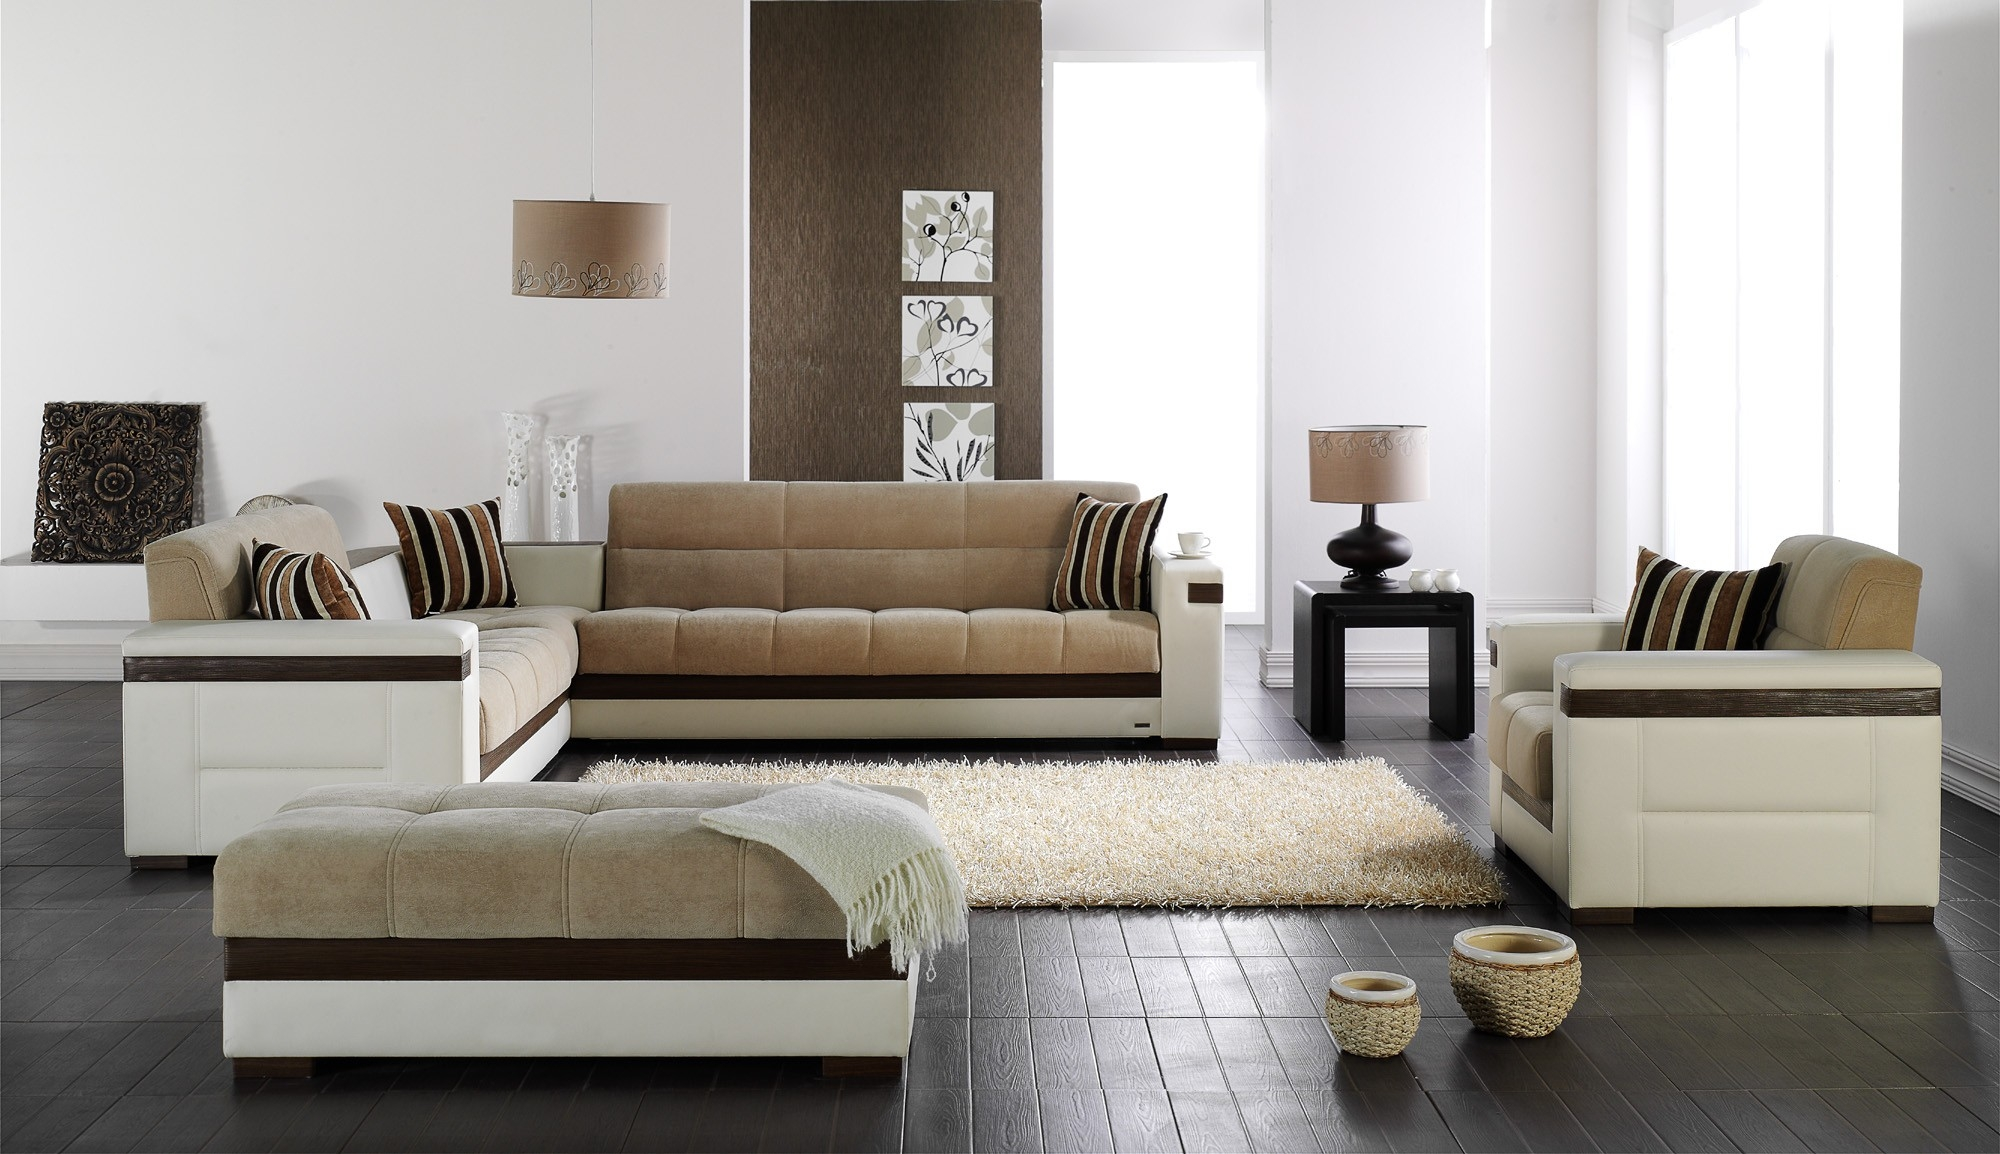 Moon Sectional Sofa Sleeper With Regard To European Style Sectional Sofas (Image 13 of 15)